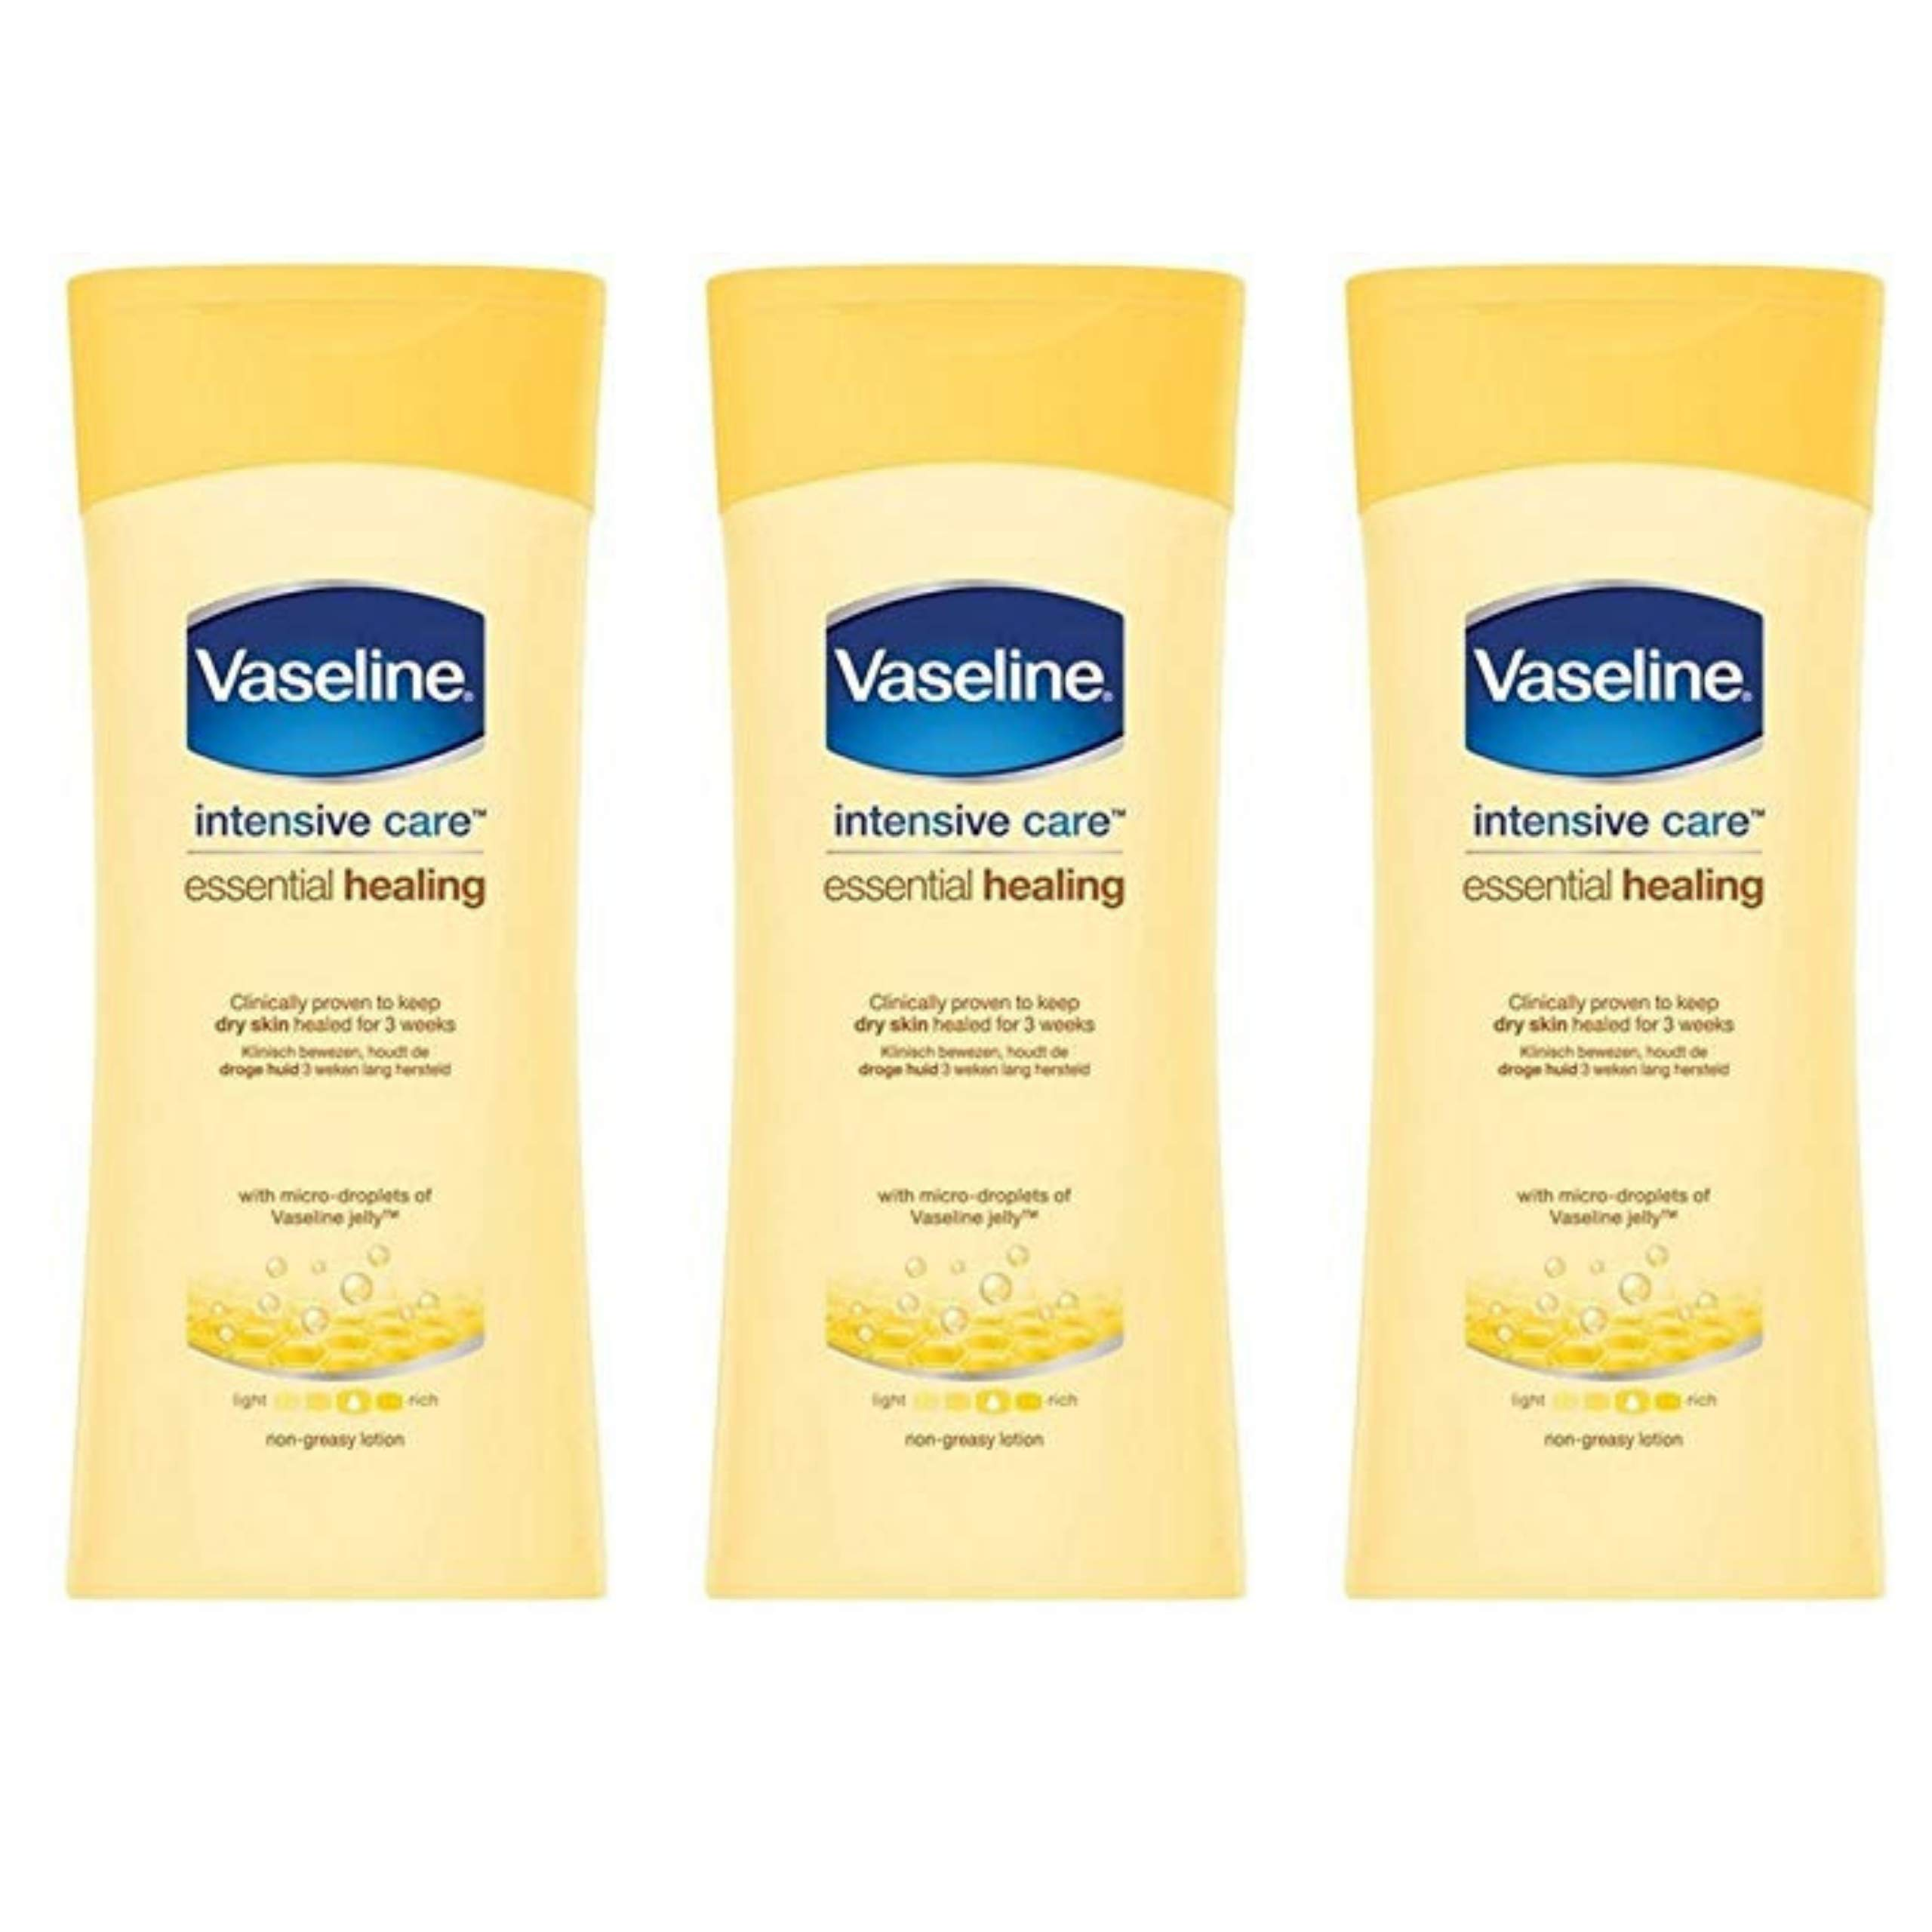 Vaseline Intensive Care Body Lotion, Essential Healing Dry Skin Repair, Pack of 3, (13.53 Oz / 400ml Each) by Videncia